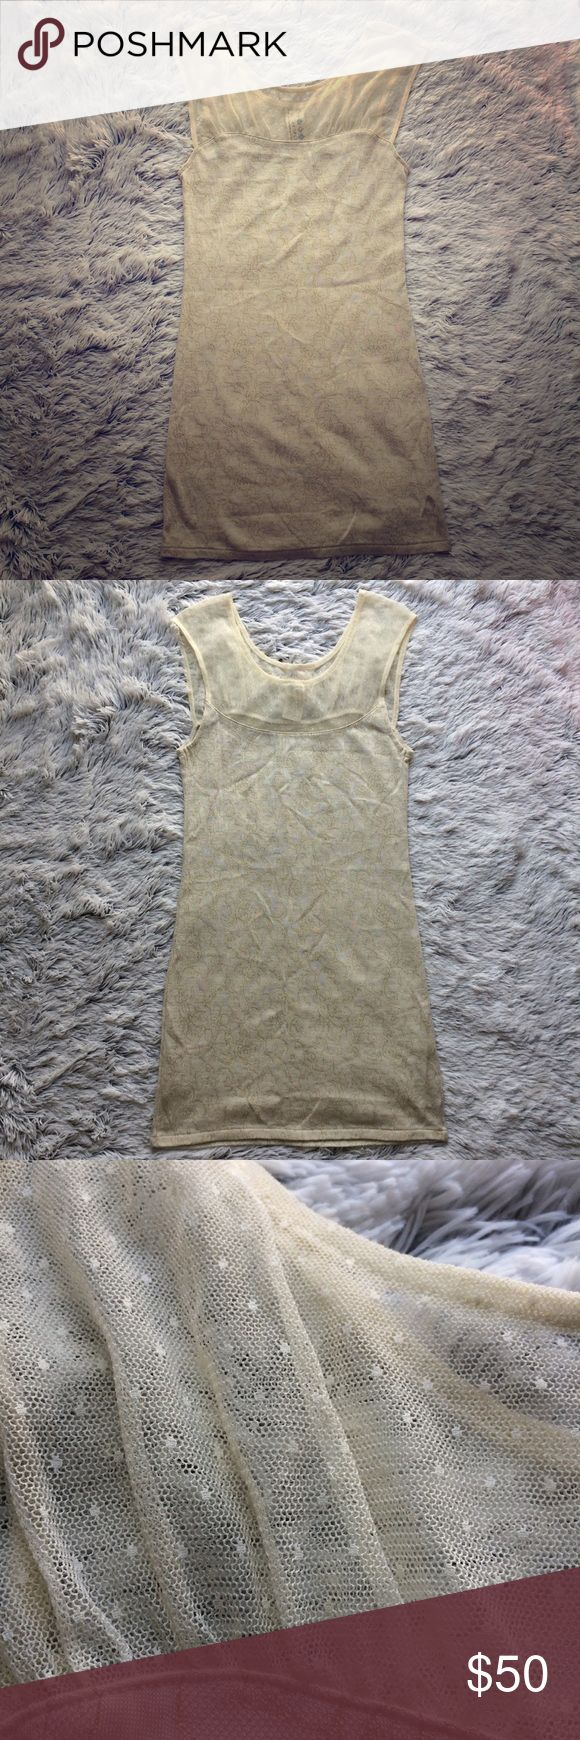 💛Free People Mesh Bodycon Dress💛 Free People mesh bodycon dress, cream with gold floral design all over and polka dot design on mesh. Slight sweetheart-type neckline. 89% acrylic, so it's super warm! Pair with leggings and booties for a perfectly polished look this fall 🍁 Add a utility jacket for a little edge to this delicate, girly piece 😉 EUC. 33.5 inch length and 28 inch waist. Stretchy material. All offers welcome! Free People Dresses Mini